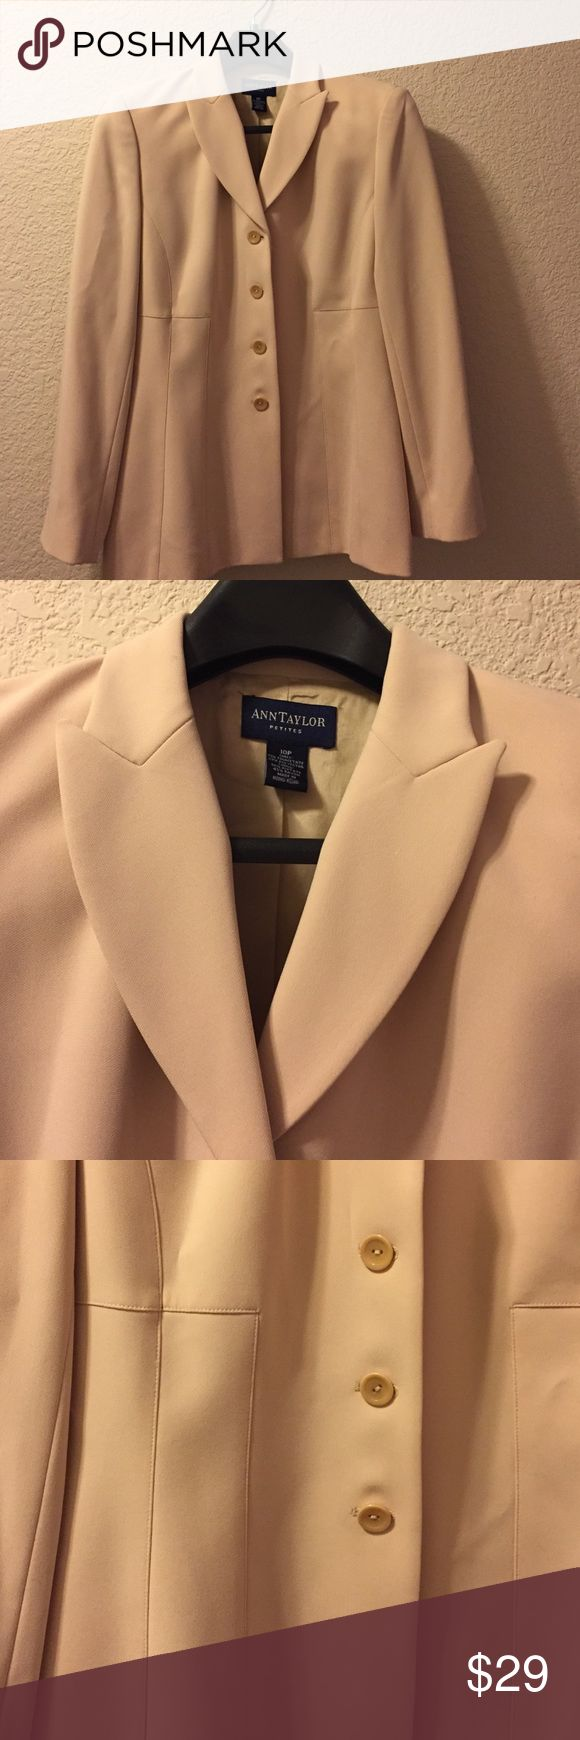 Ann Taylor 10 petite cream jacket Beautifully made size 10 petite Ann Taylor long jacket.  Button down front. Great with dress pants, skirts or over a dress. 71% triacetrate 29% polyester. Ann Taylor Jackets & Coats Blazers